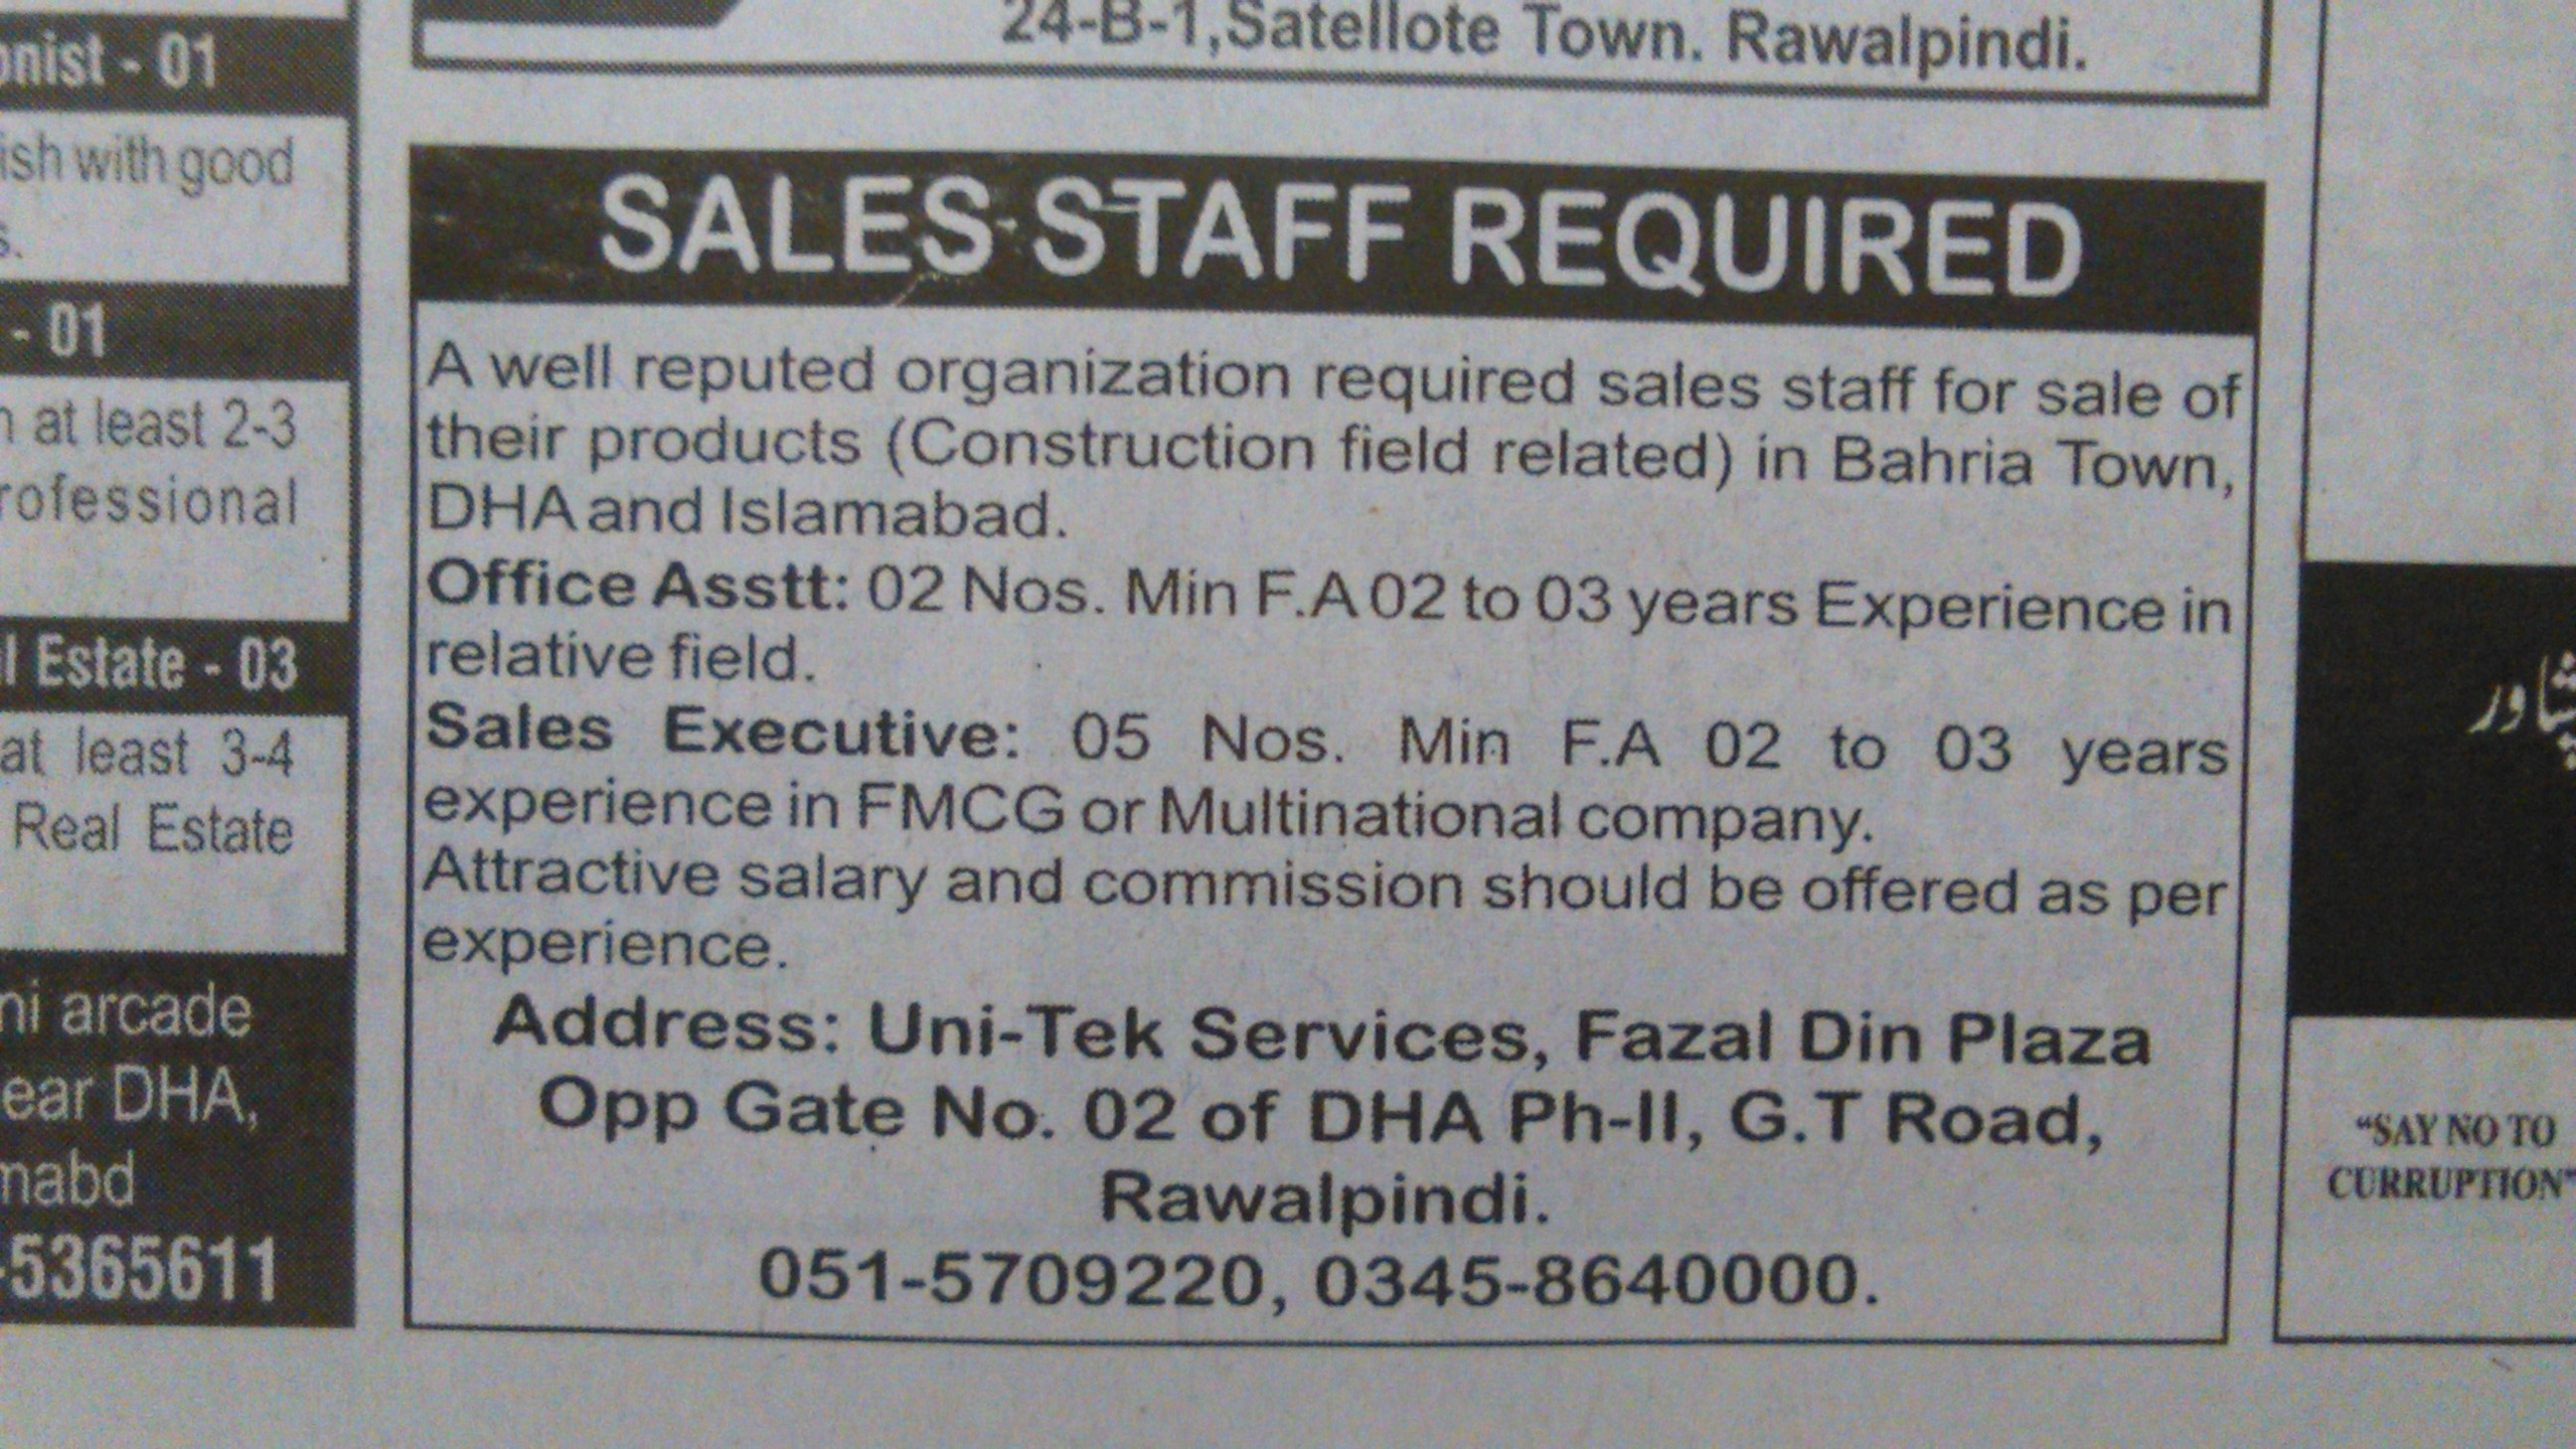 UniTech Services Sales Staff Required